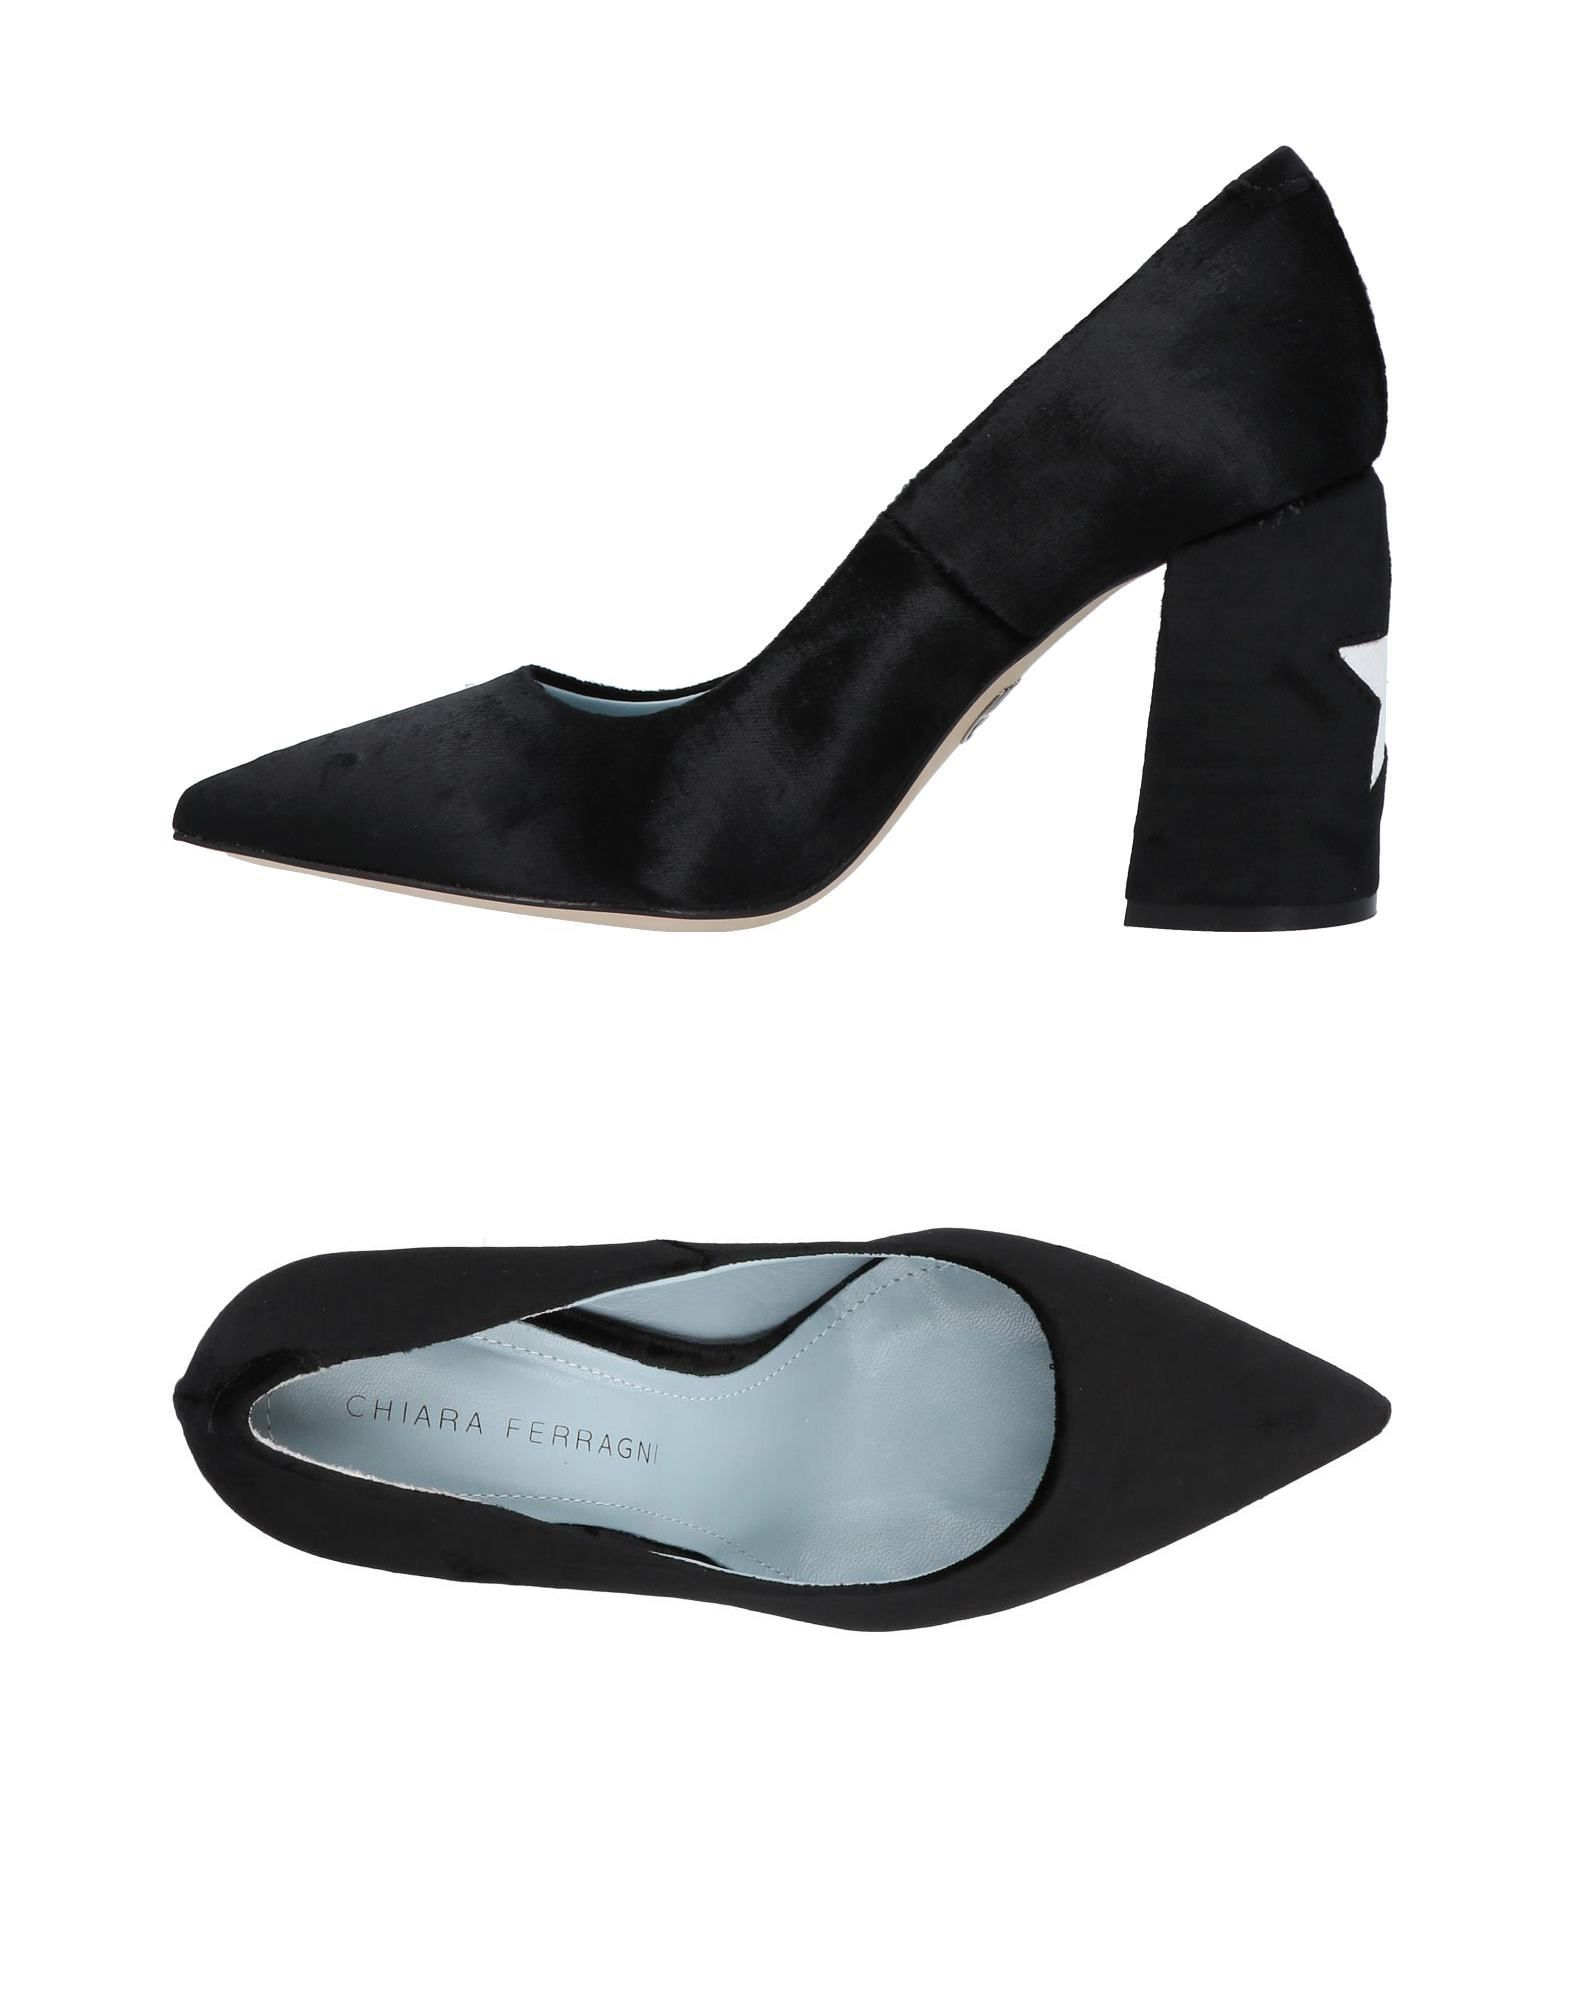 Stilvolle billige Pumps Schuhe Chiara Ferragni Pumps billige Damen  11453699OB 66d599